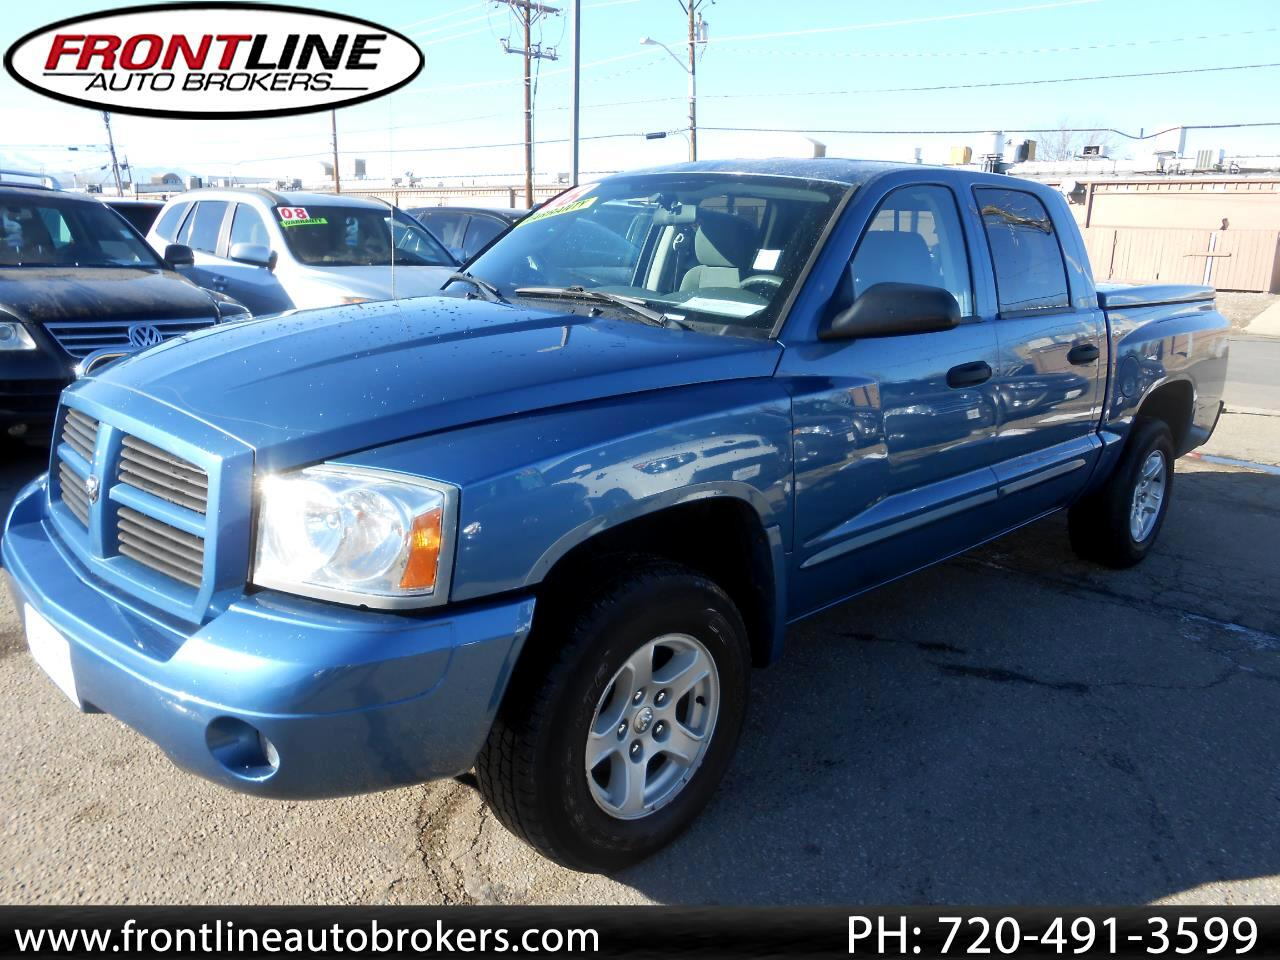 2006 Dodge Dakota 4WD Crew Cab SLT